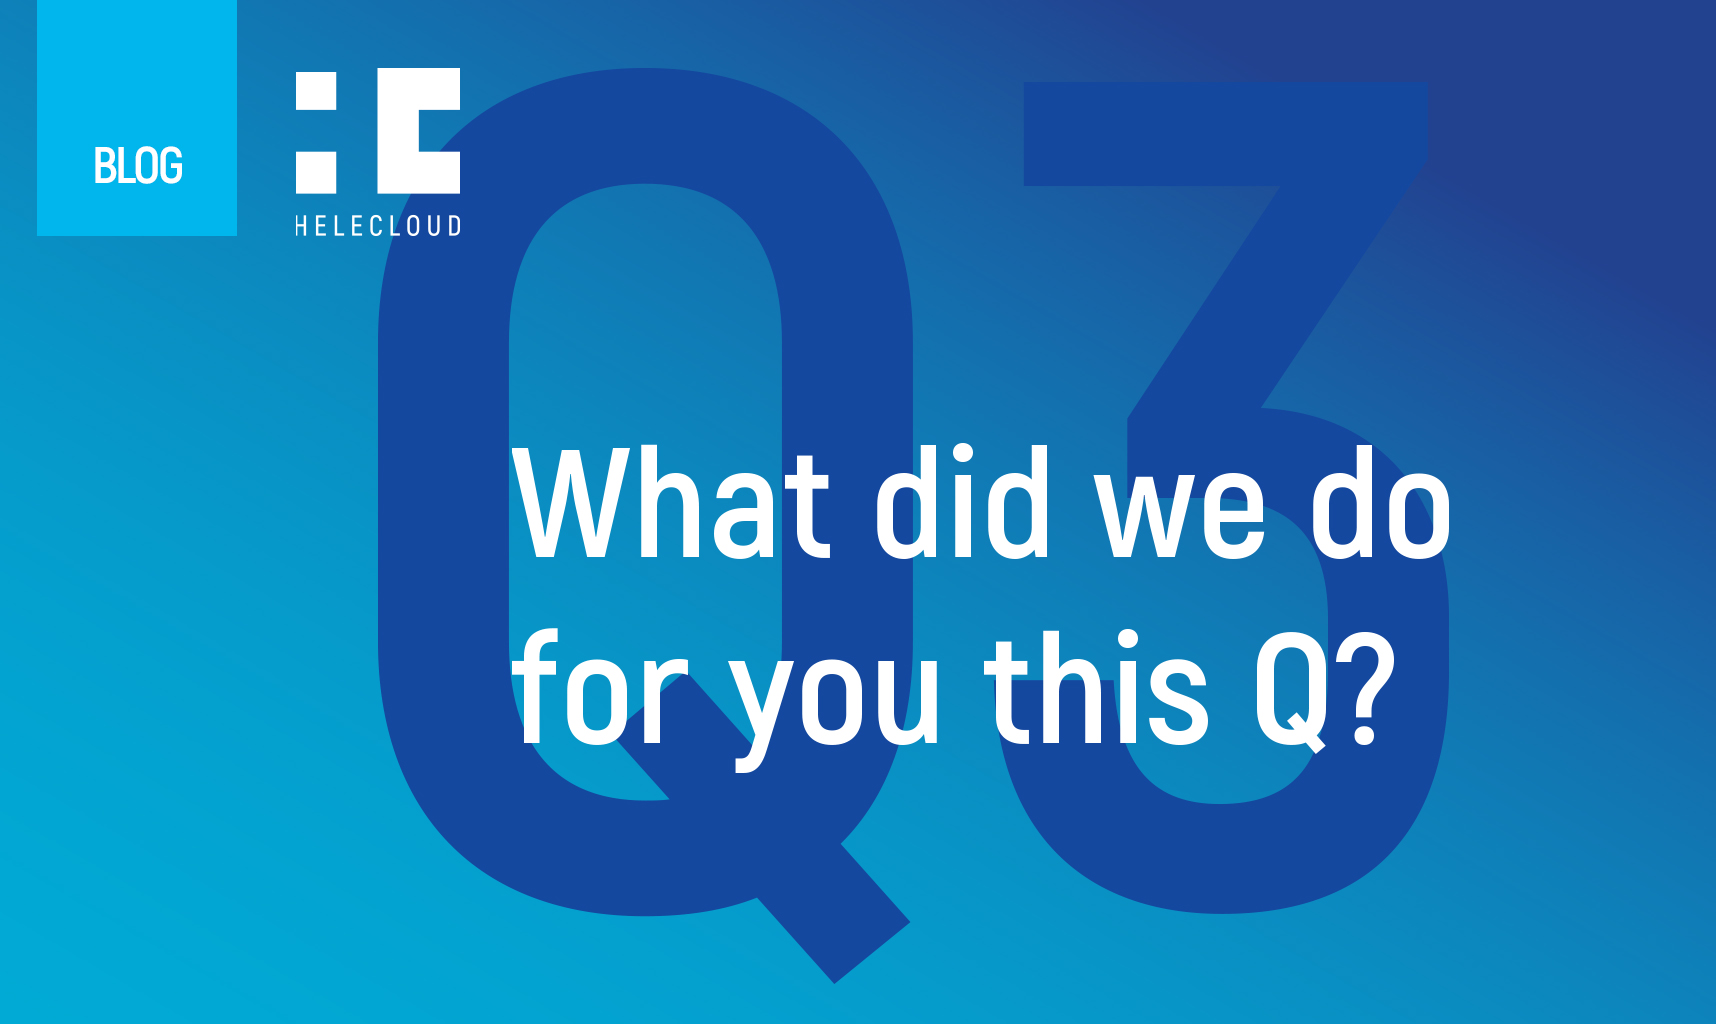 What did we do for you this Q?